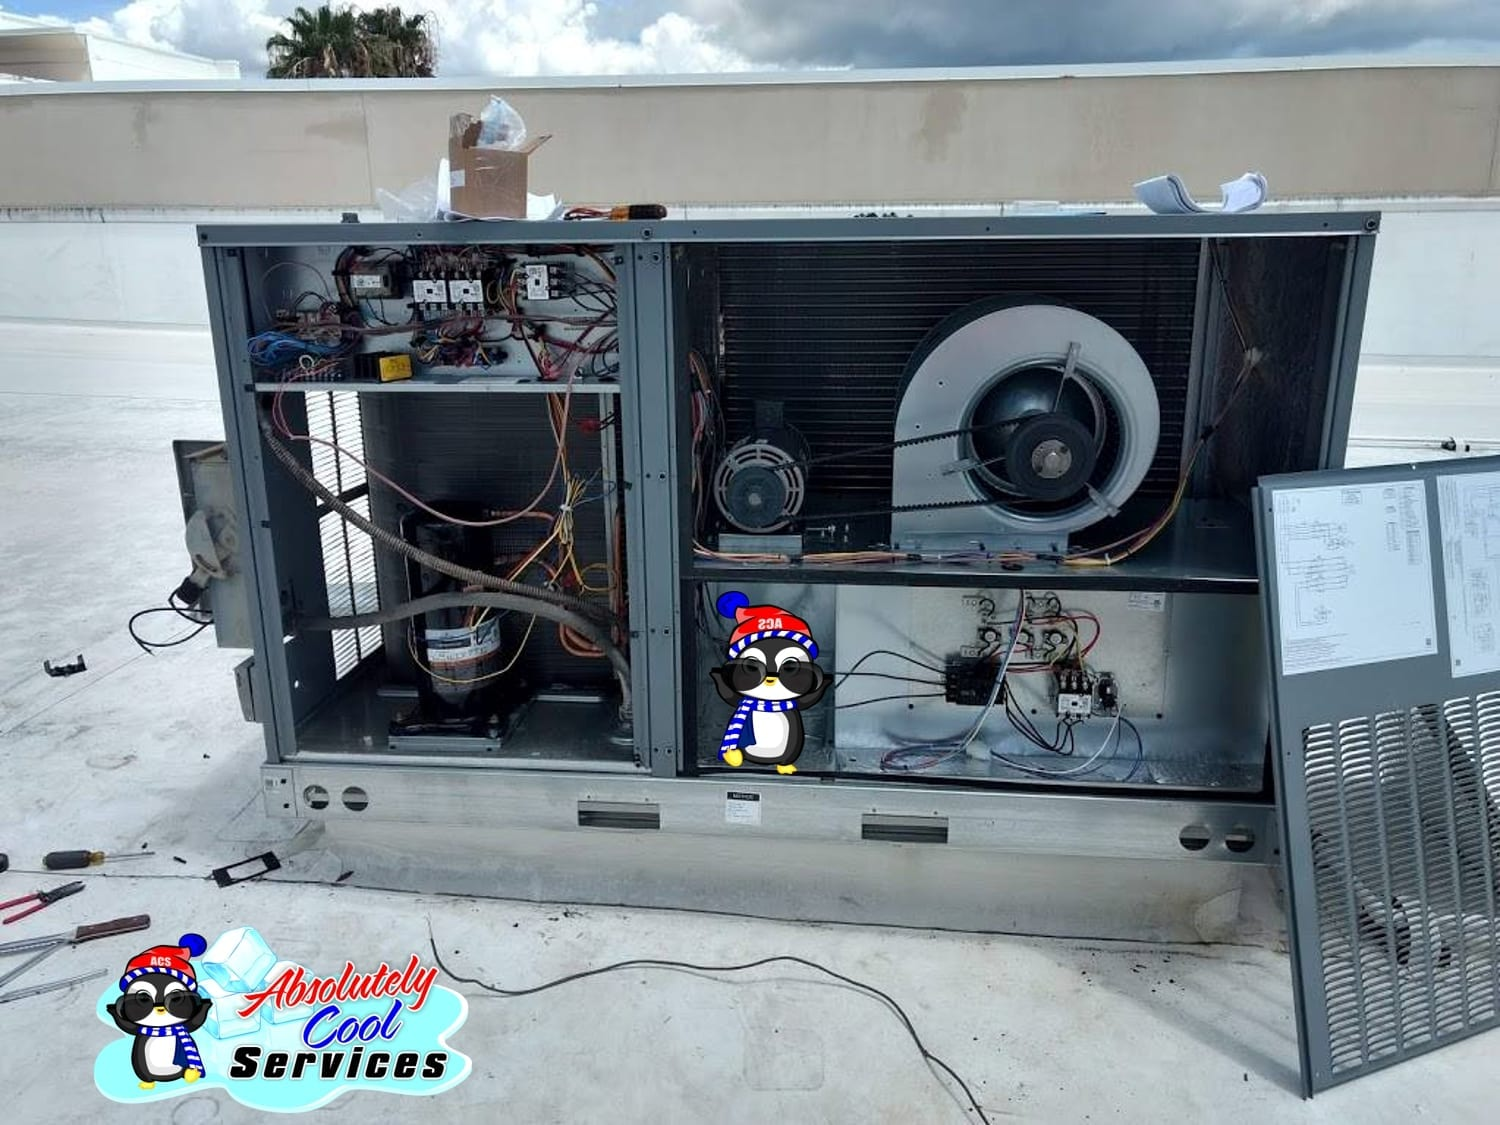 Roof Air Conditioning | Air Conditioning Diagnosis Service near Lake Worth